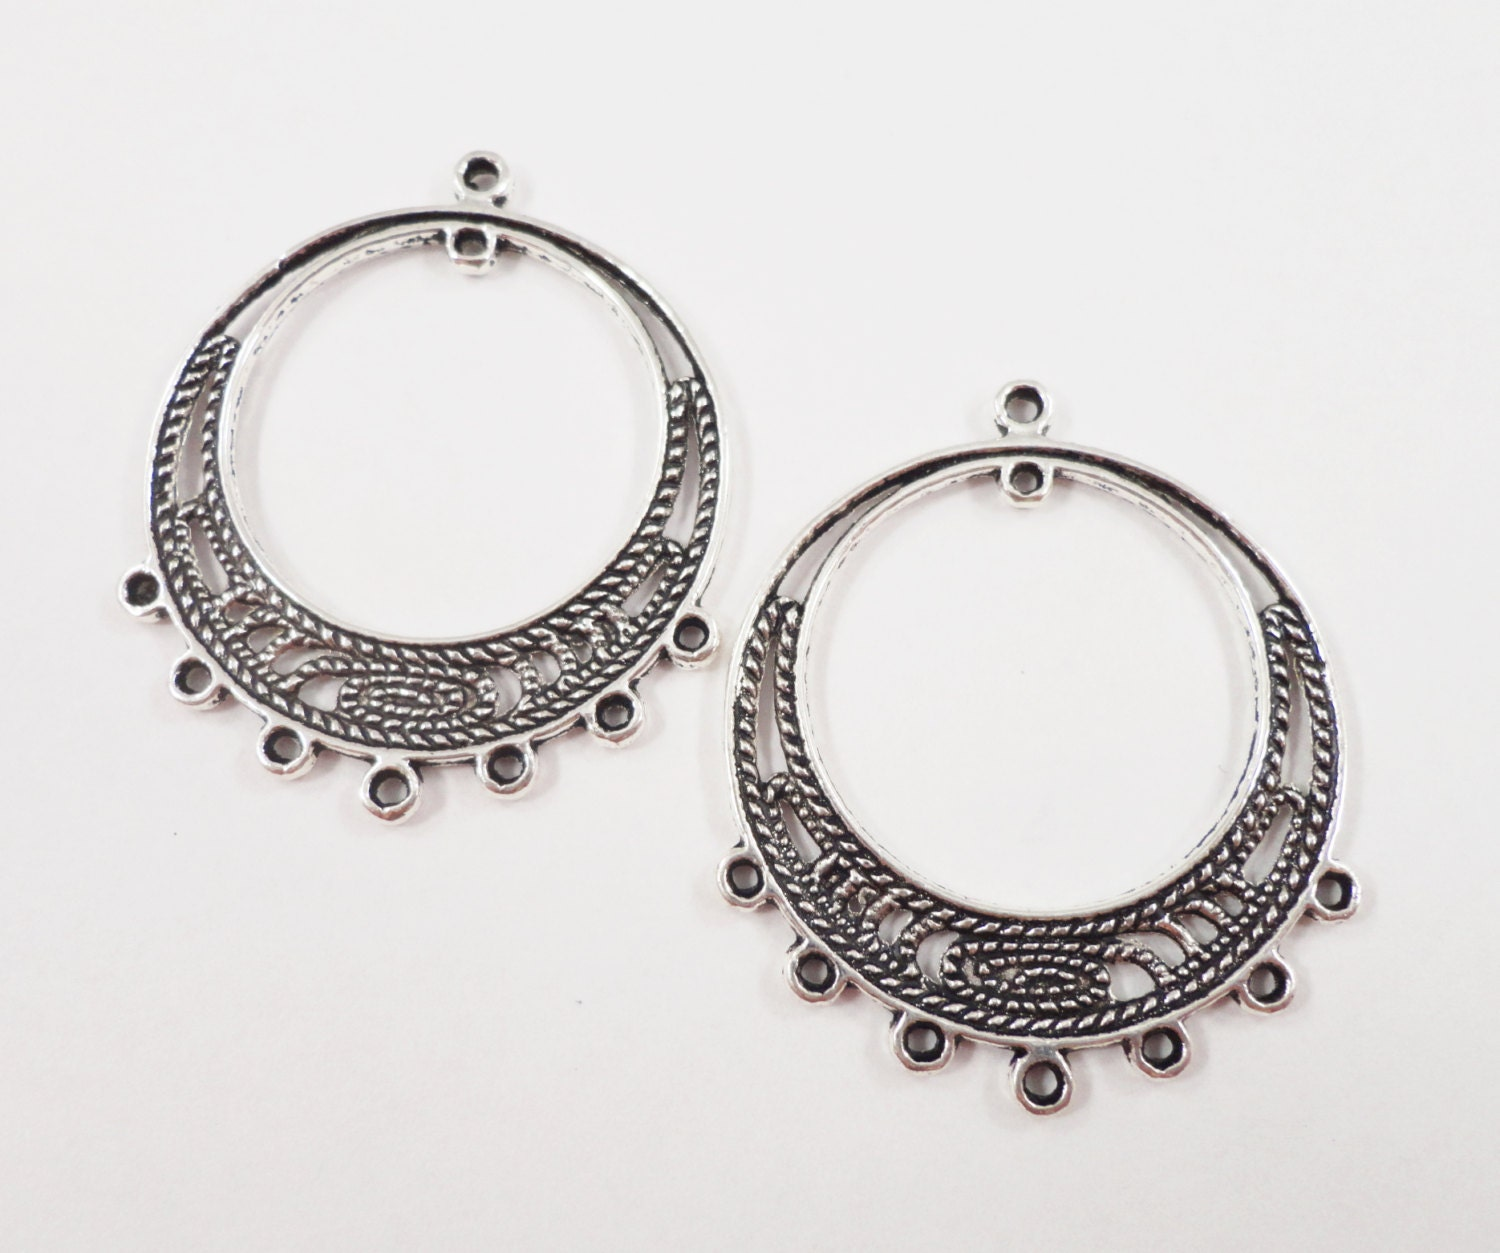 ana silver antique in earrings kendra scott